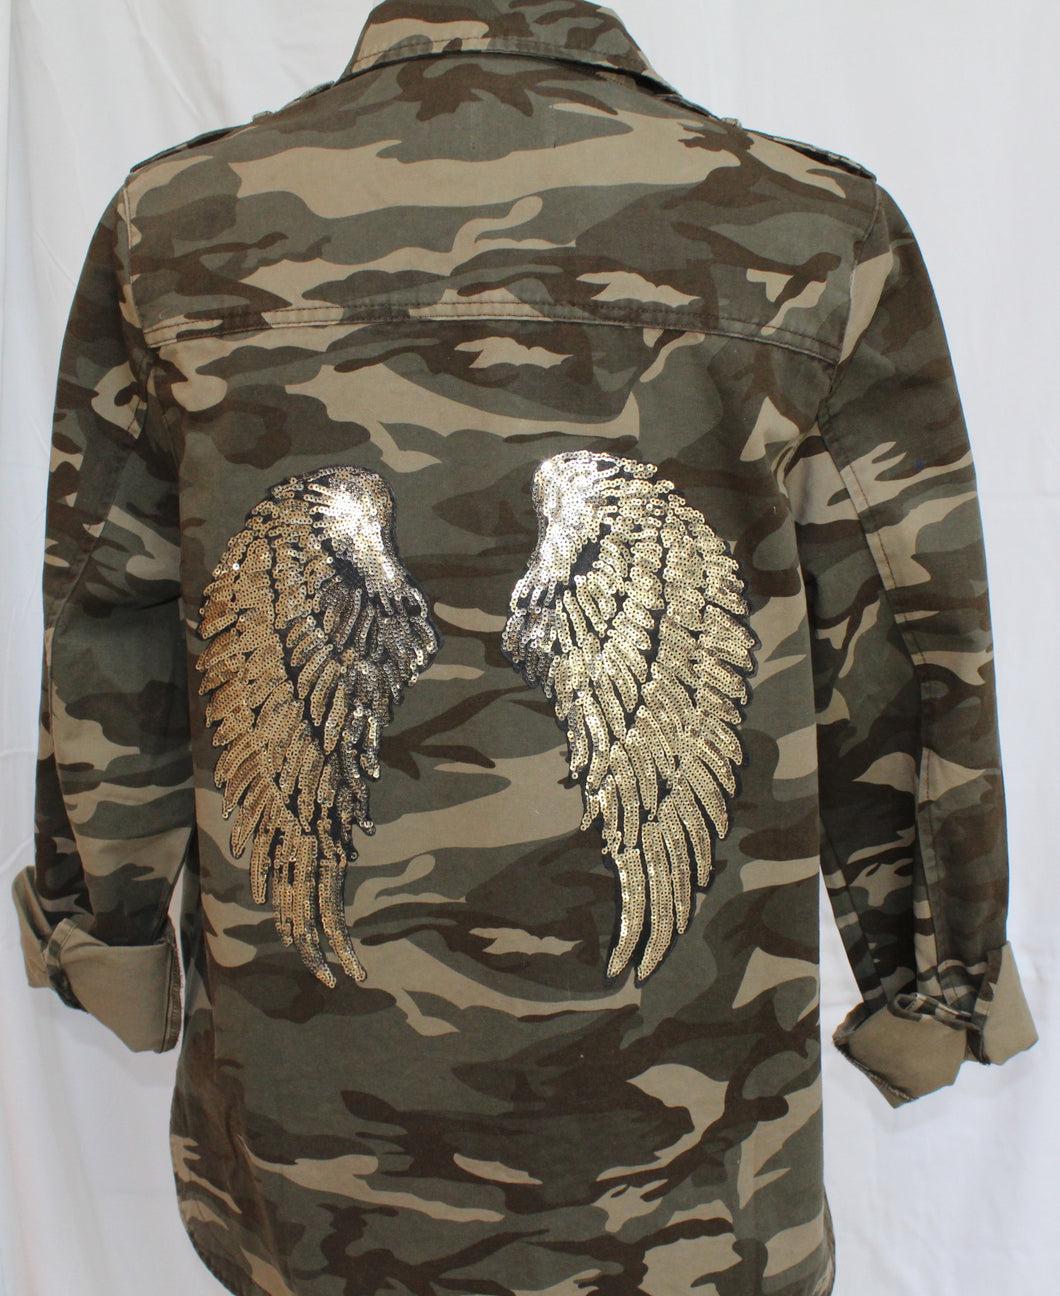 Camouflage Jacket with Large Sequin Wings